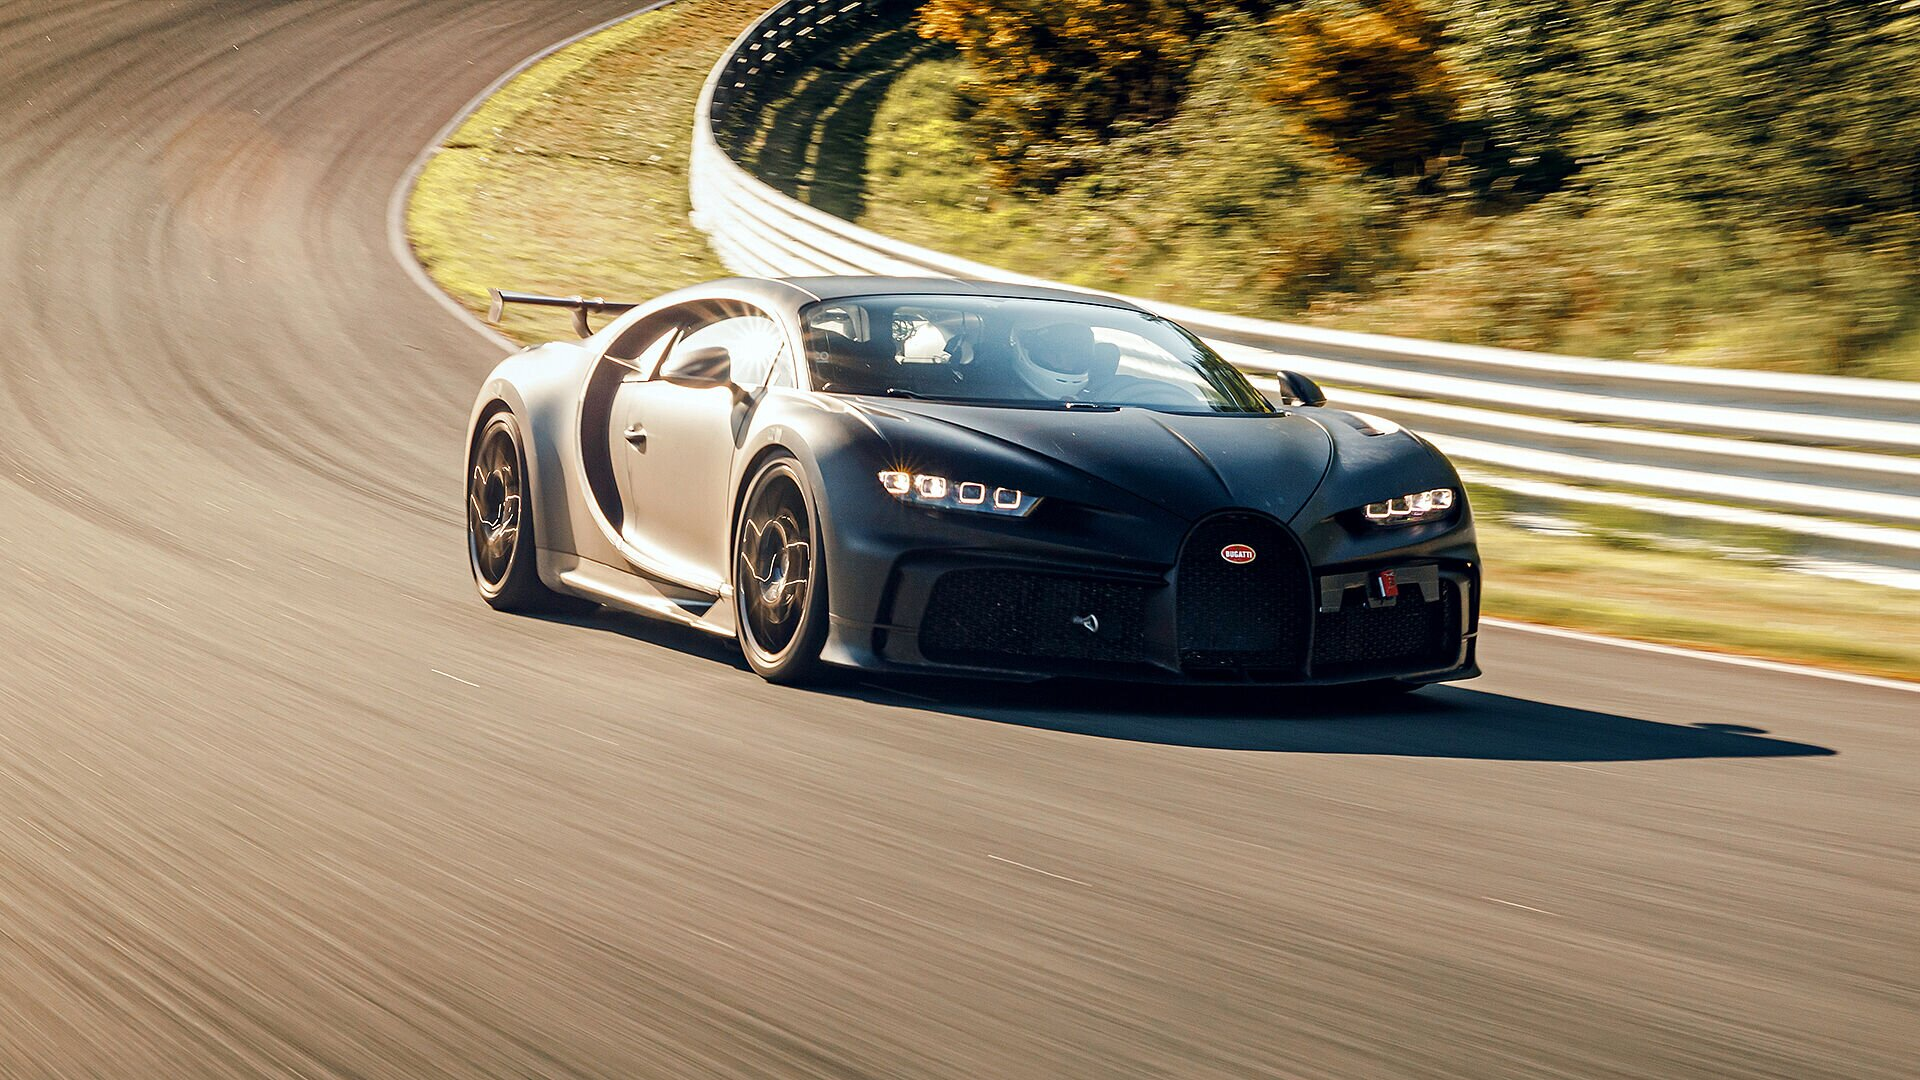 Fine-tuning of the new Chiron Pur Sport is now in the final stages, with test runs being carried out at Bilster Berg in Germany.